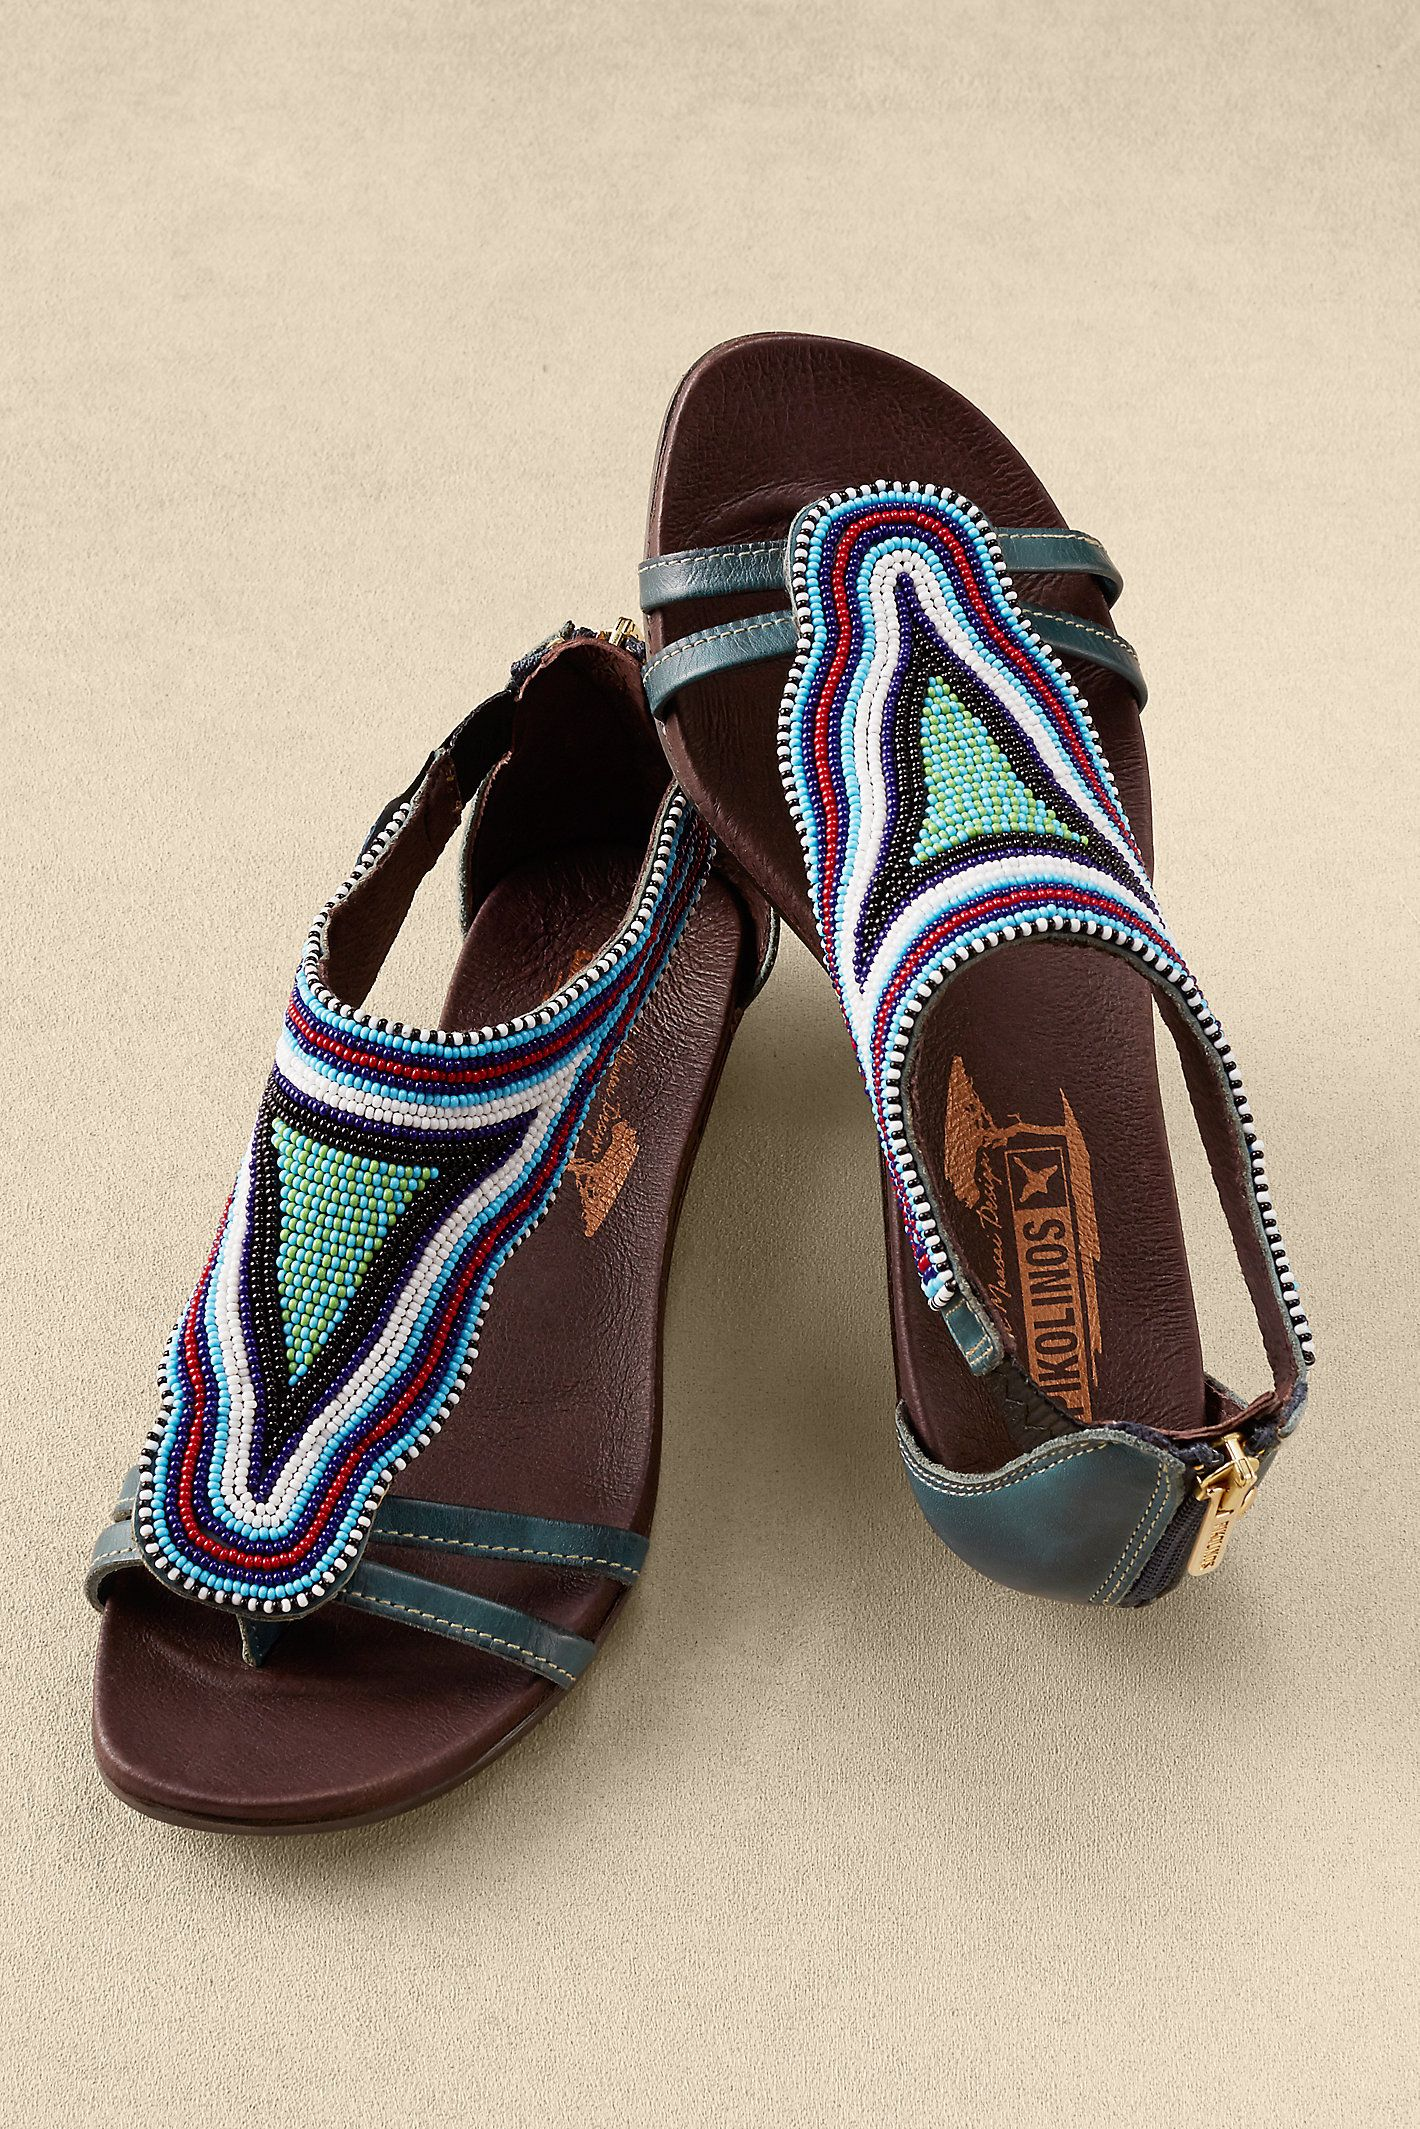 6be76c8077c53 With striking hand-beading designed and sewn by Maasai tribeswomen in  Kenya